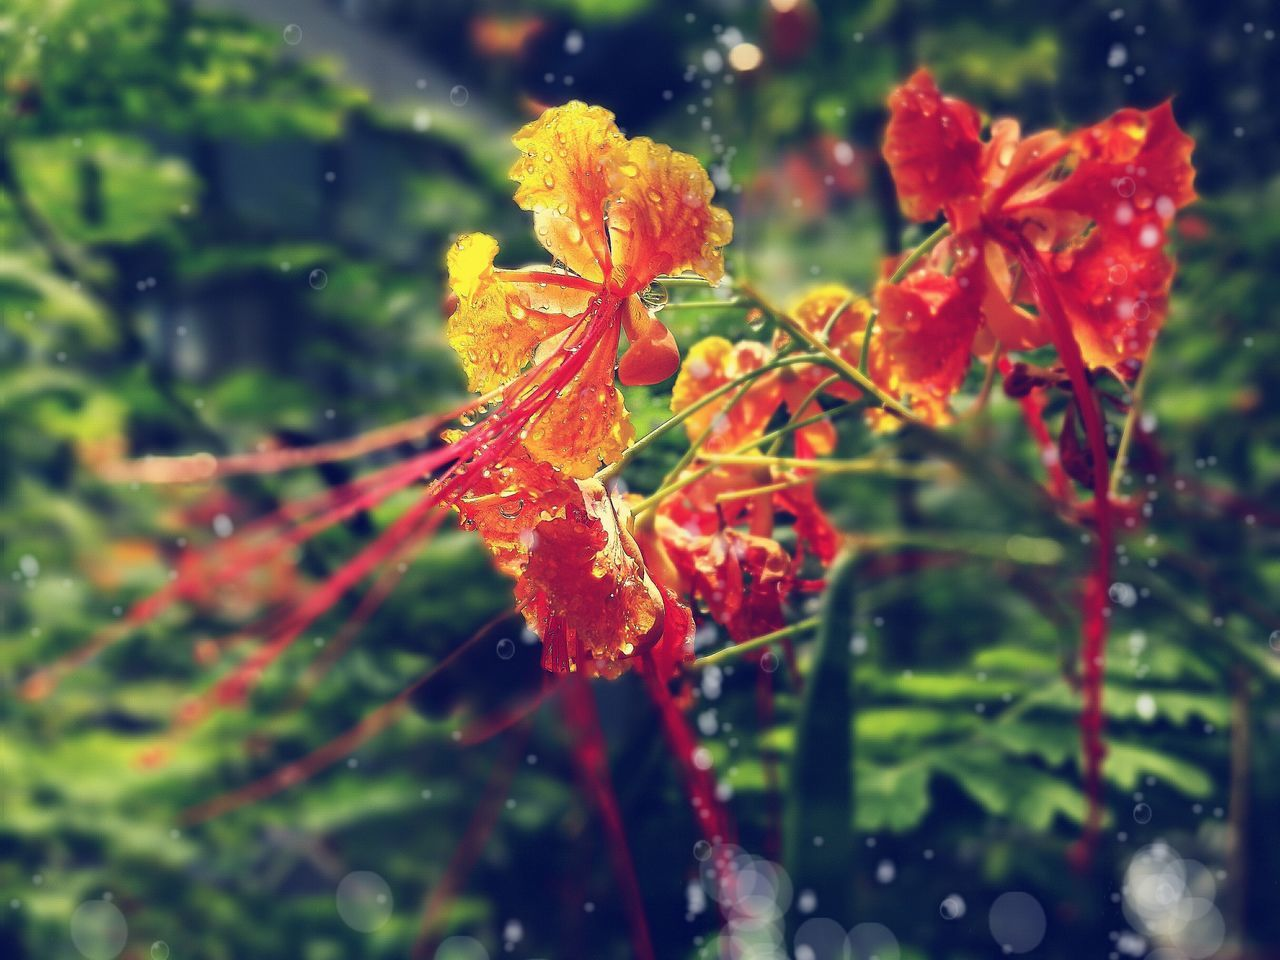 nature, orange color, beauty in nature, no people, growth, outdoors, close-up, day, red, plant, fragility, water, flower